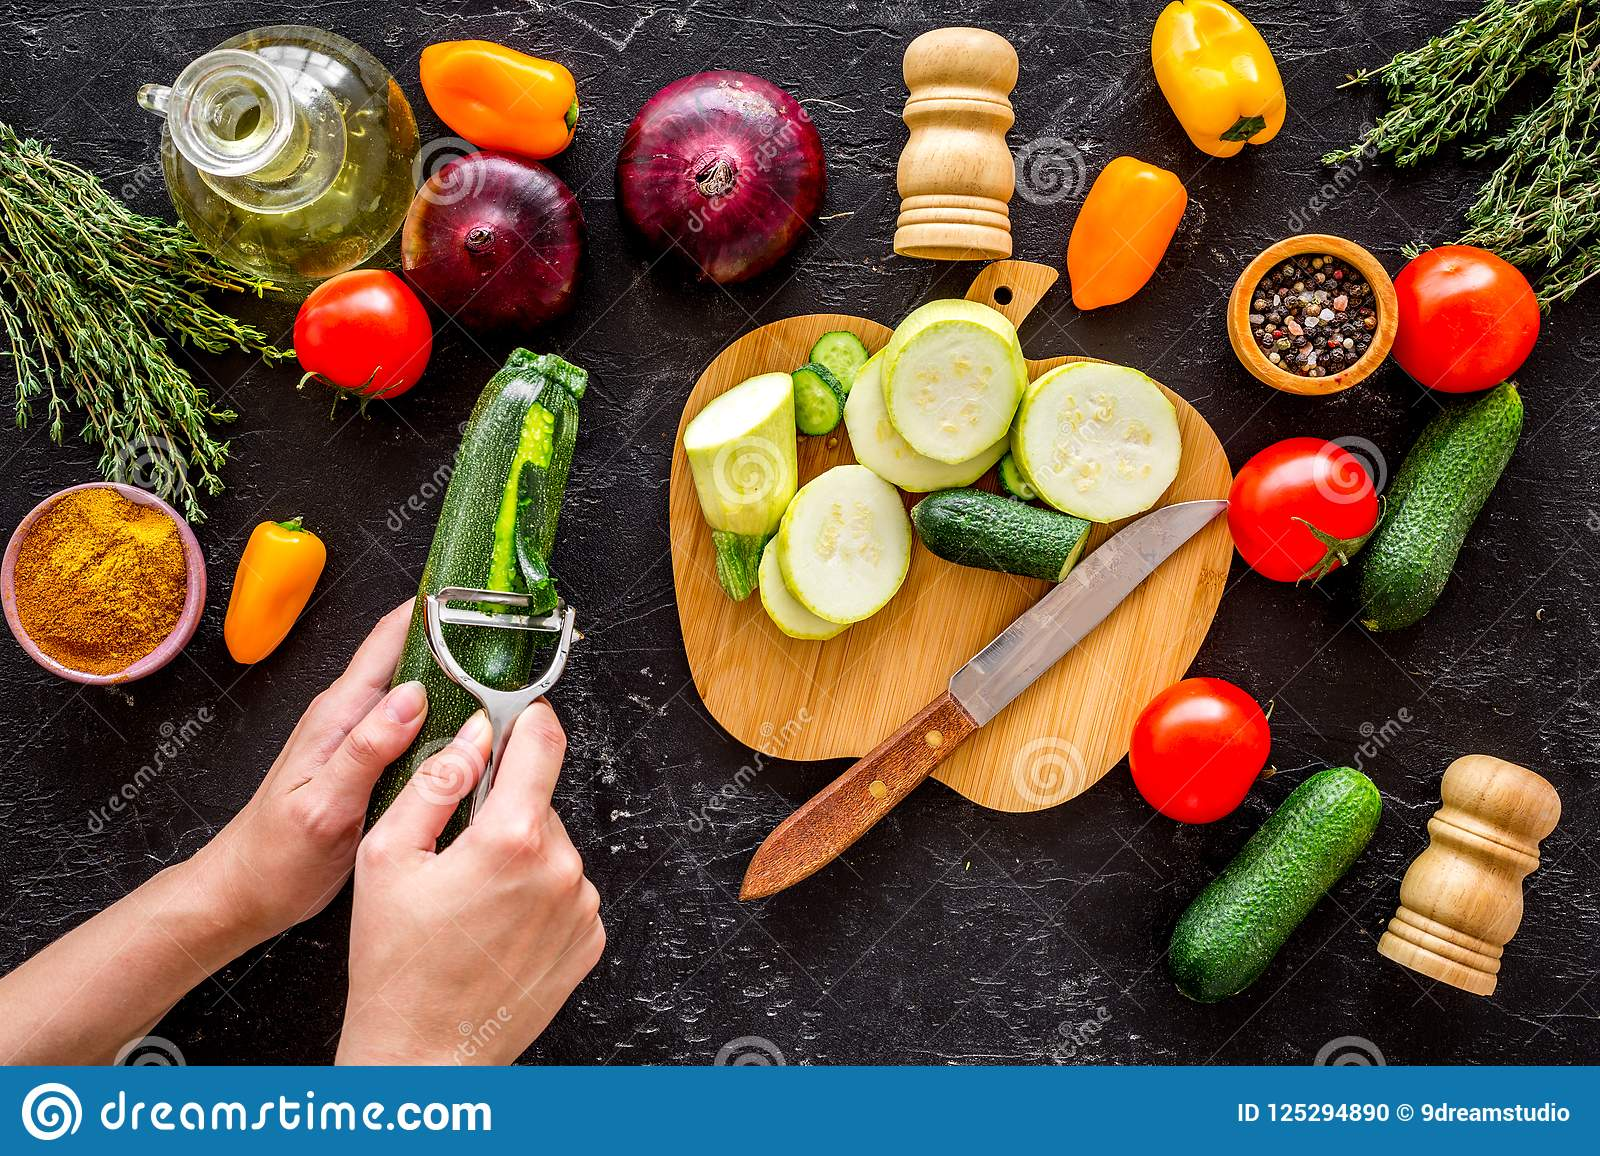 Clean Cut Board Gbppr Vision 3 Cutting Cleaning Printed Circuit Material Different Fresh Vegetables Cooking Vegetable Stew Hands Squash Skin Black